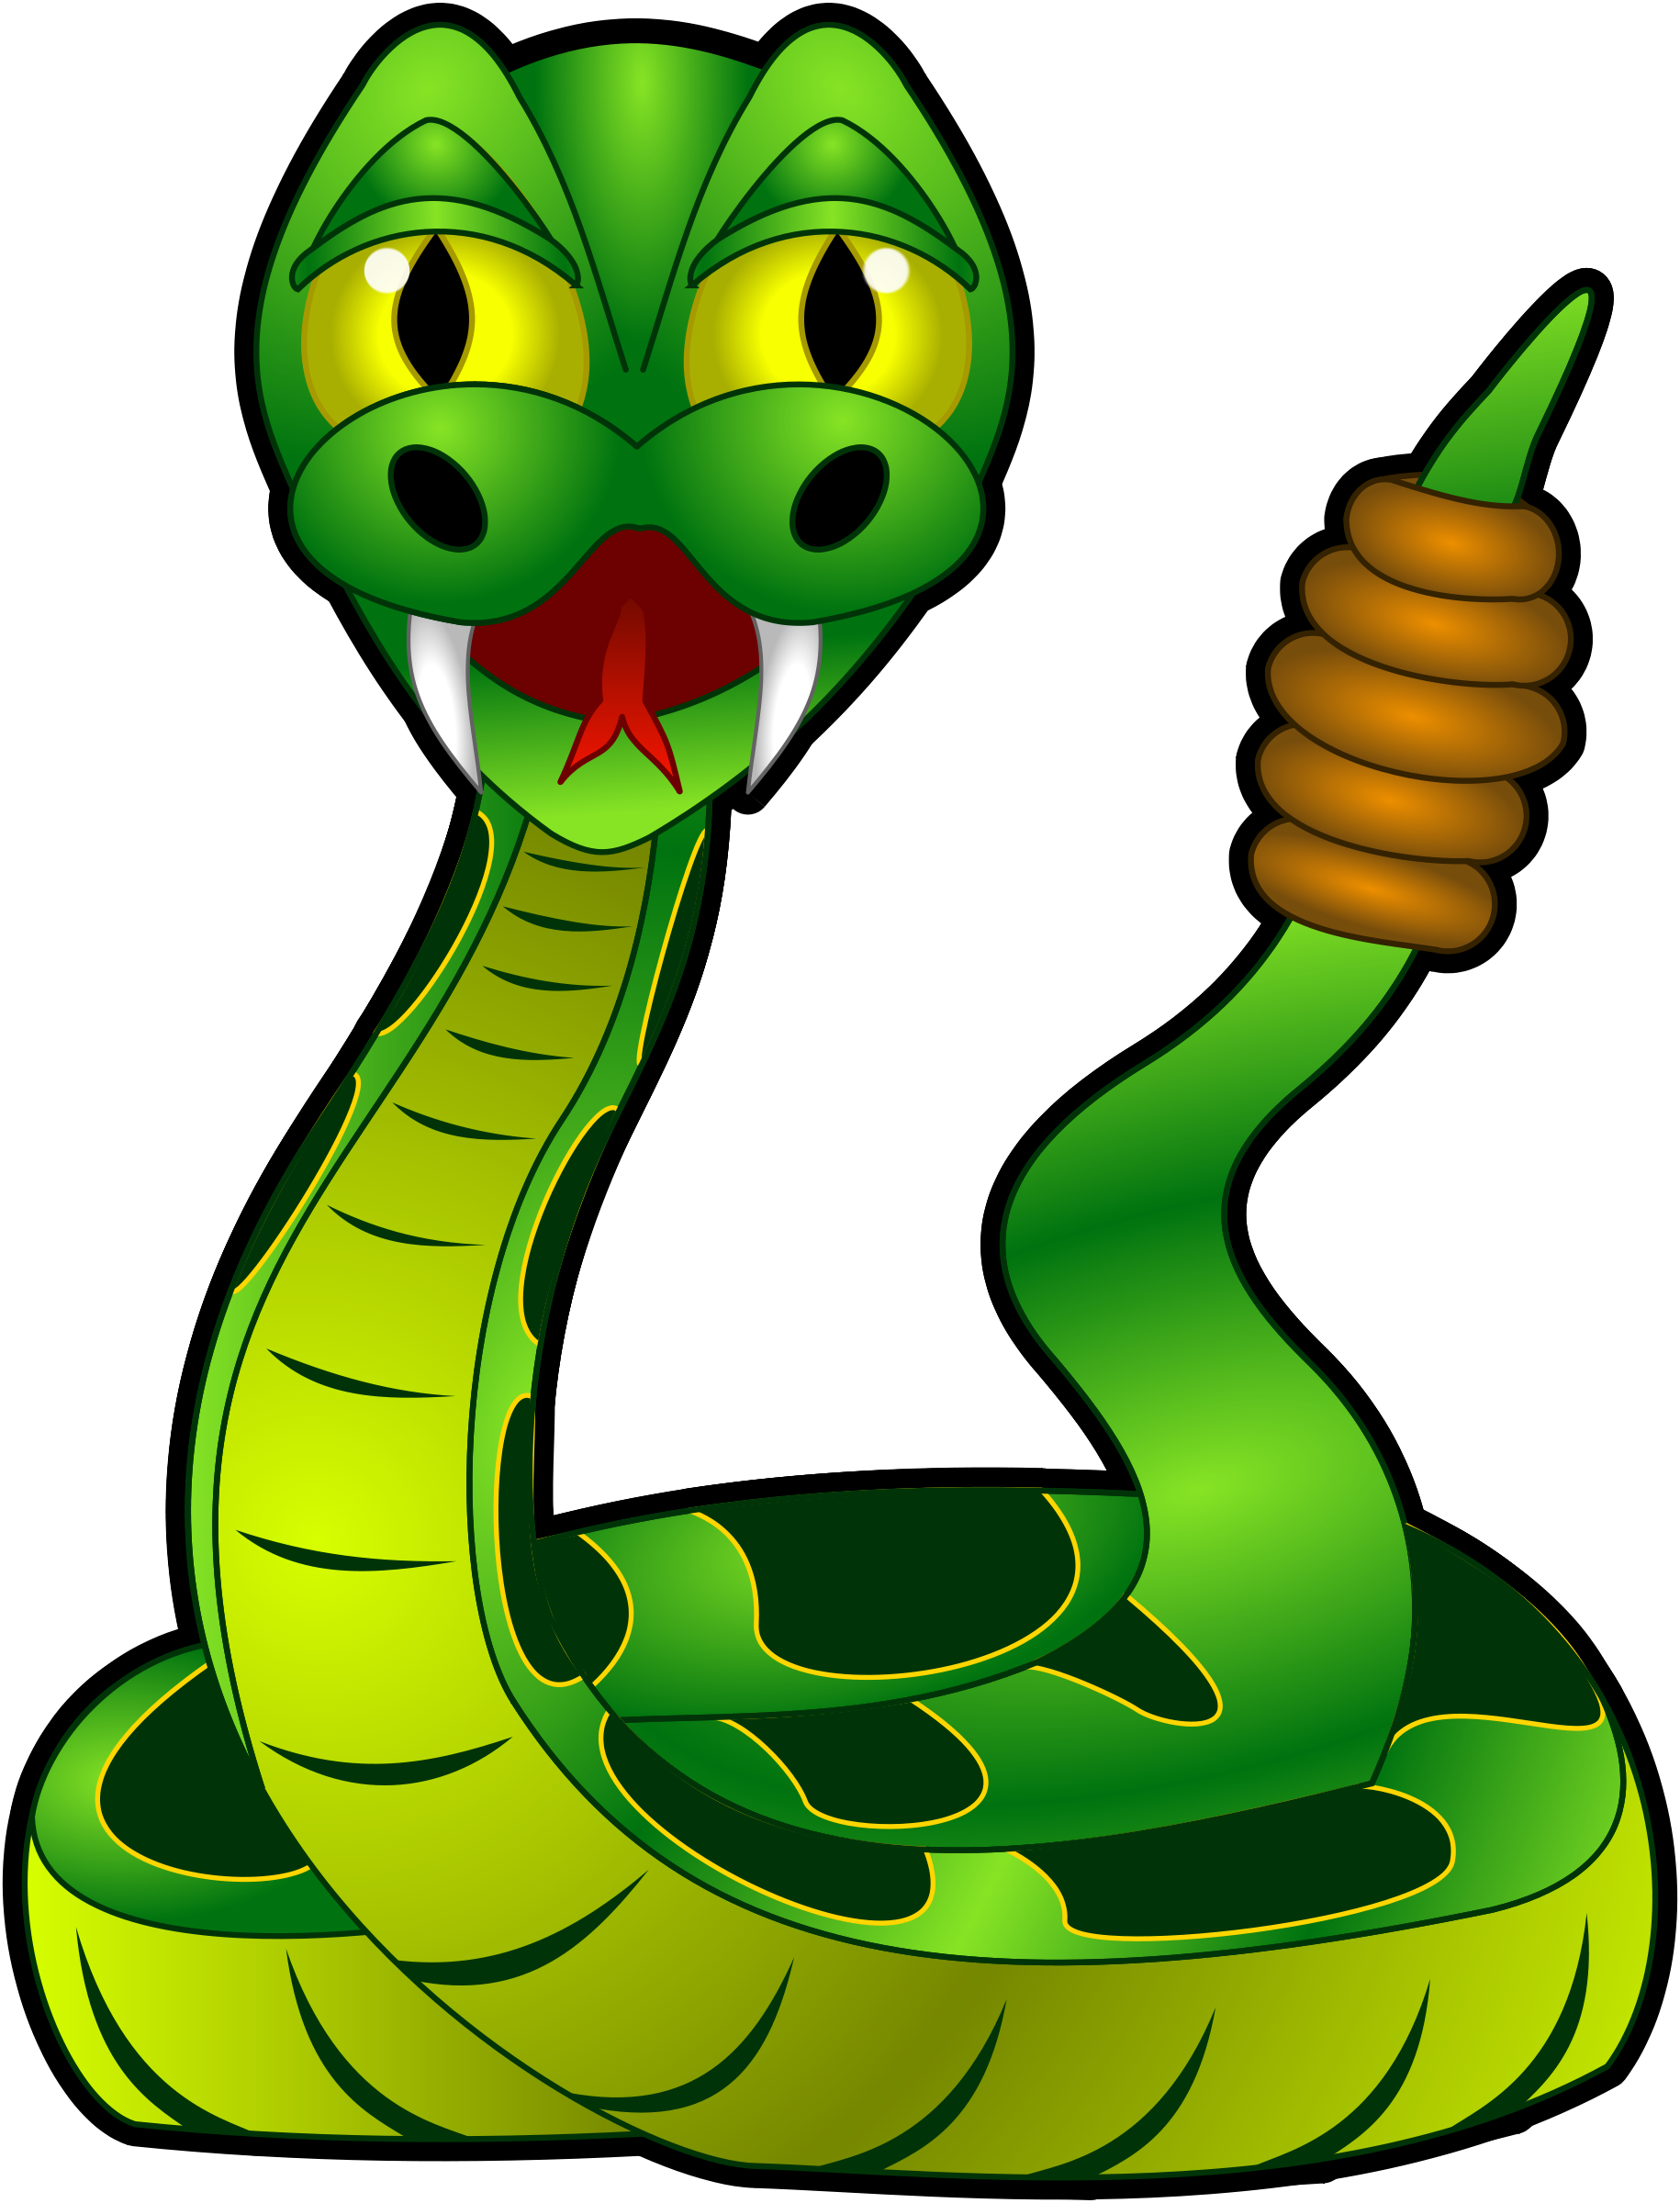 Traditional clipart 3eyed snake banner free Rattle snake clipart - ClipartFest banner free